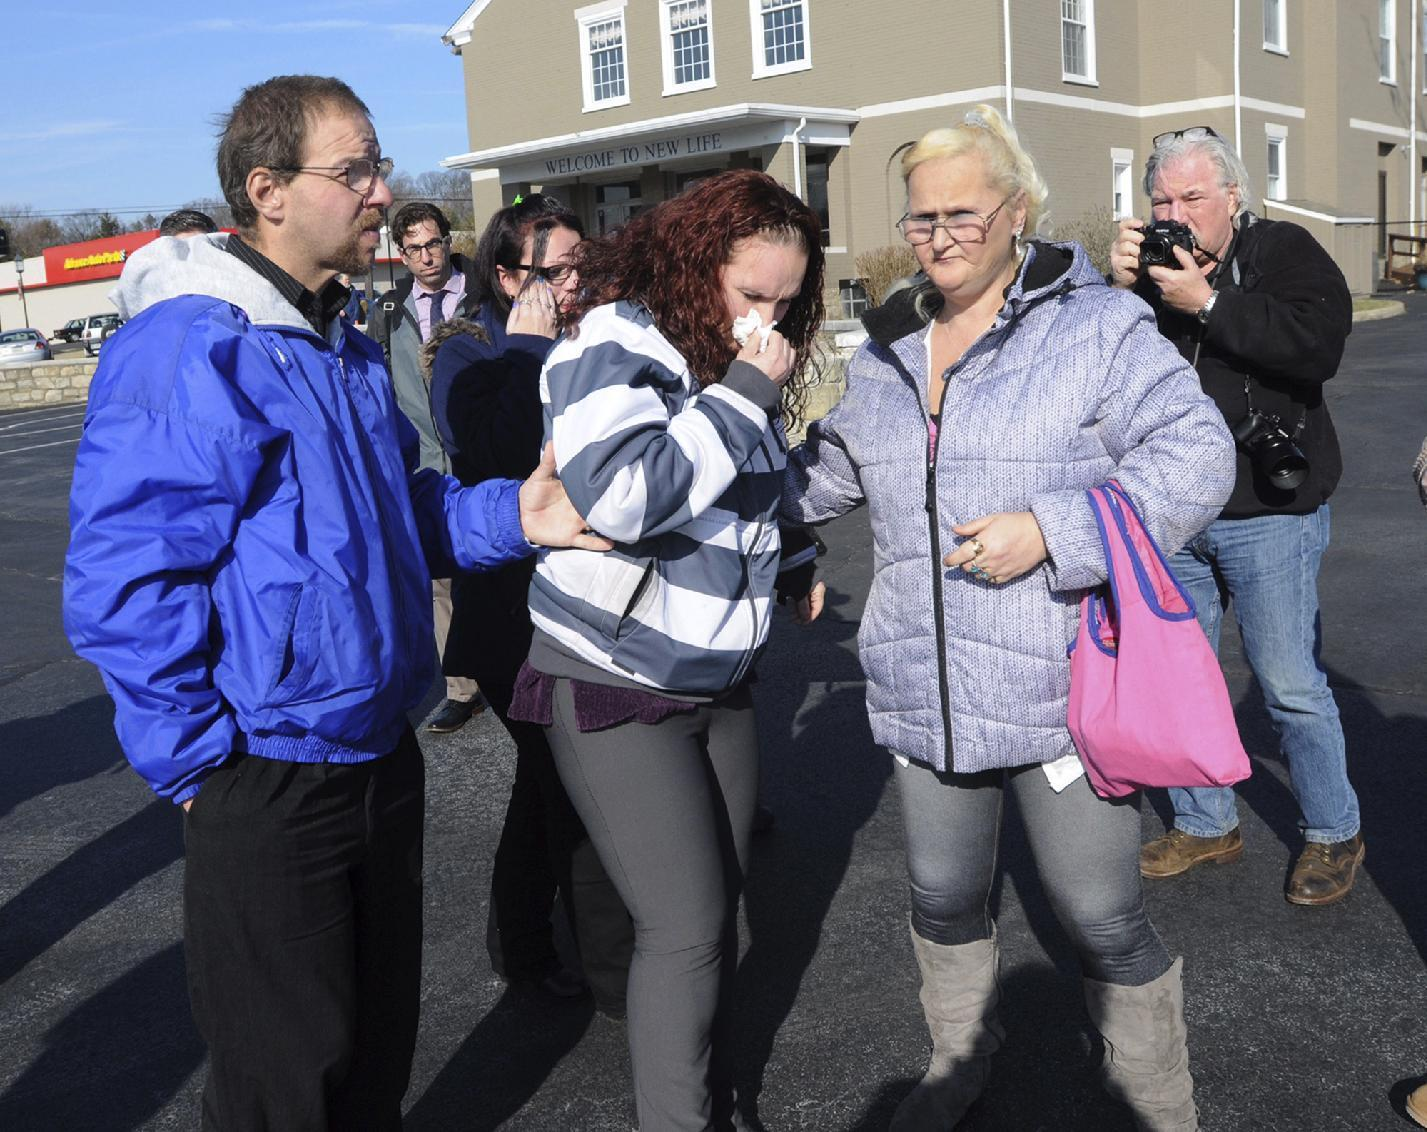 Rodney, left, and Rose Hunsicker, birth parents of Grace Packer, arrive for a memorial service in Glenside, Pa., Monday, Jan. 16, 2017. Friends described Grace, allegedly killed by her adoptive mother and the mother's boyfriend, as a bubbly girl who looked out for lonely classmates at school. (Art Gentile/The Intelligencer via AP)